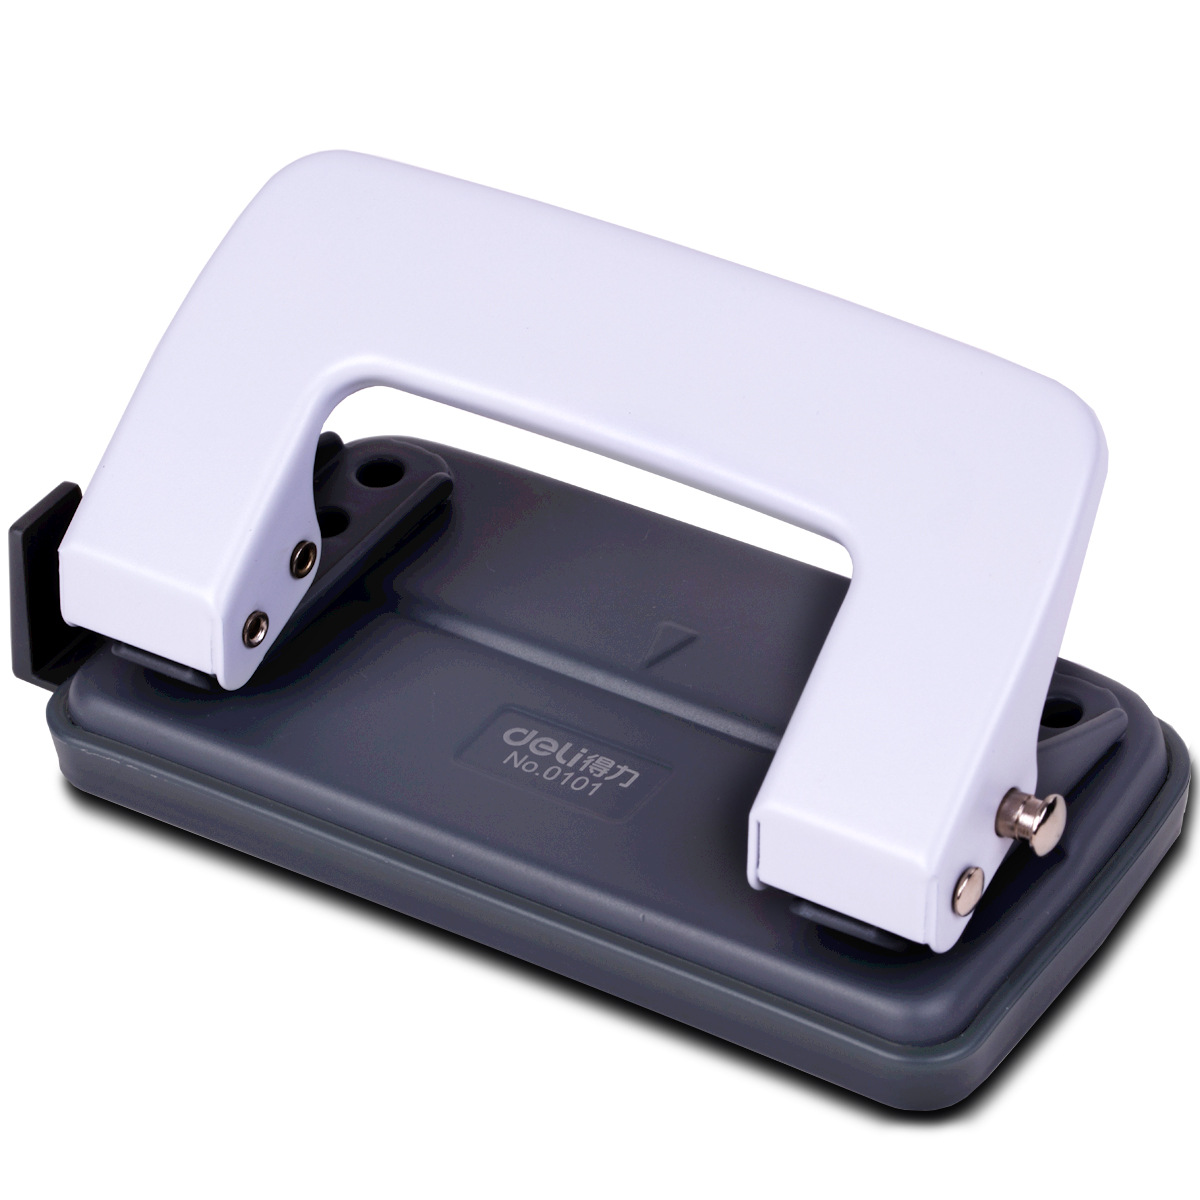 Deli 0101 Office Supplies Drilling Machine Two-Hole Punch Impress Maker To Play 10 Copy Paper